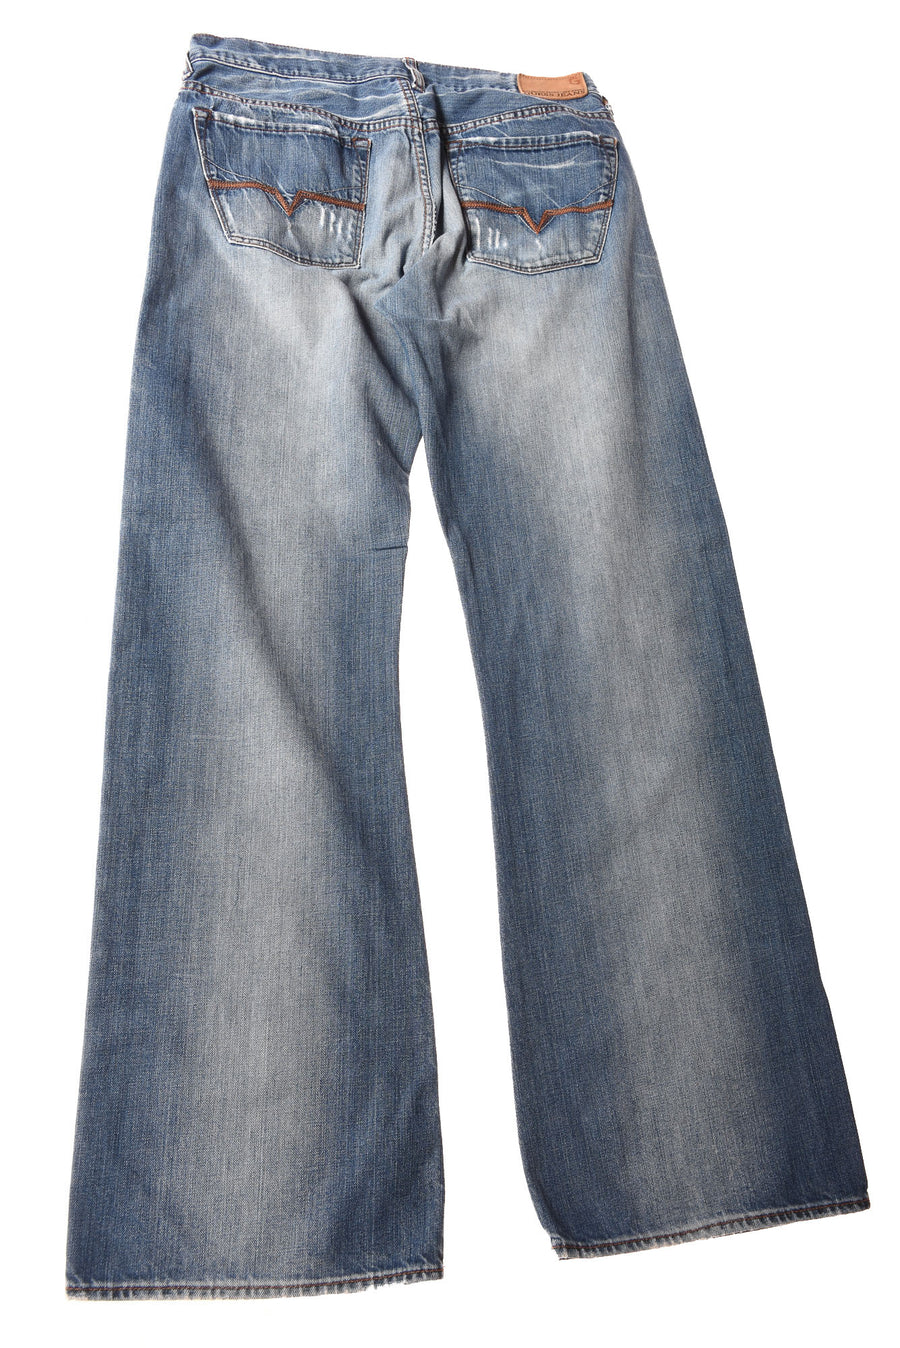 Men's Jeans By Guess